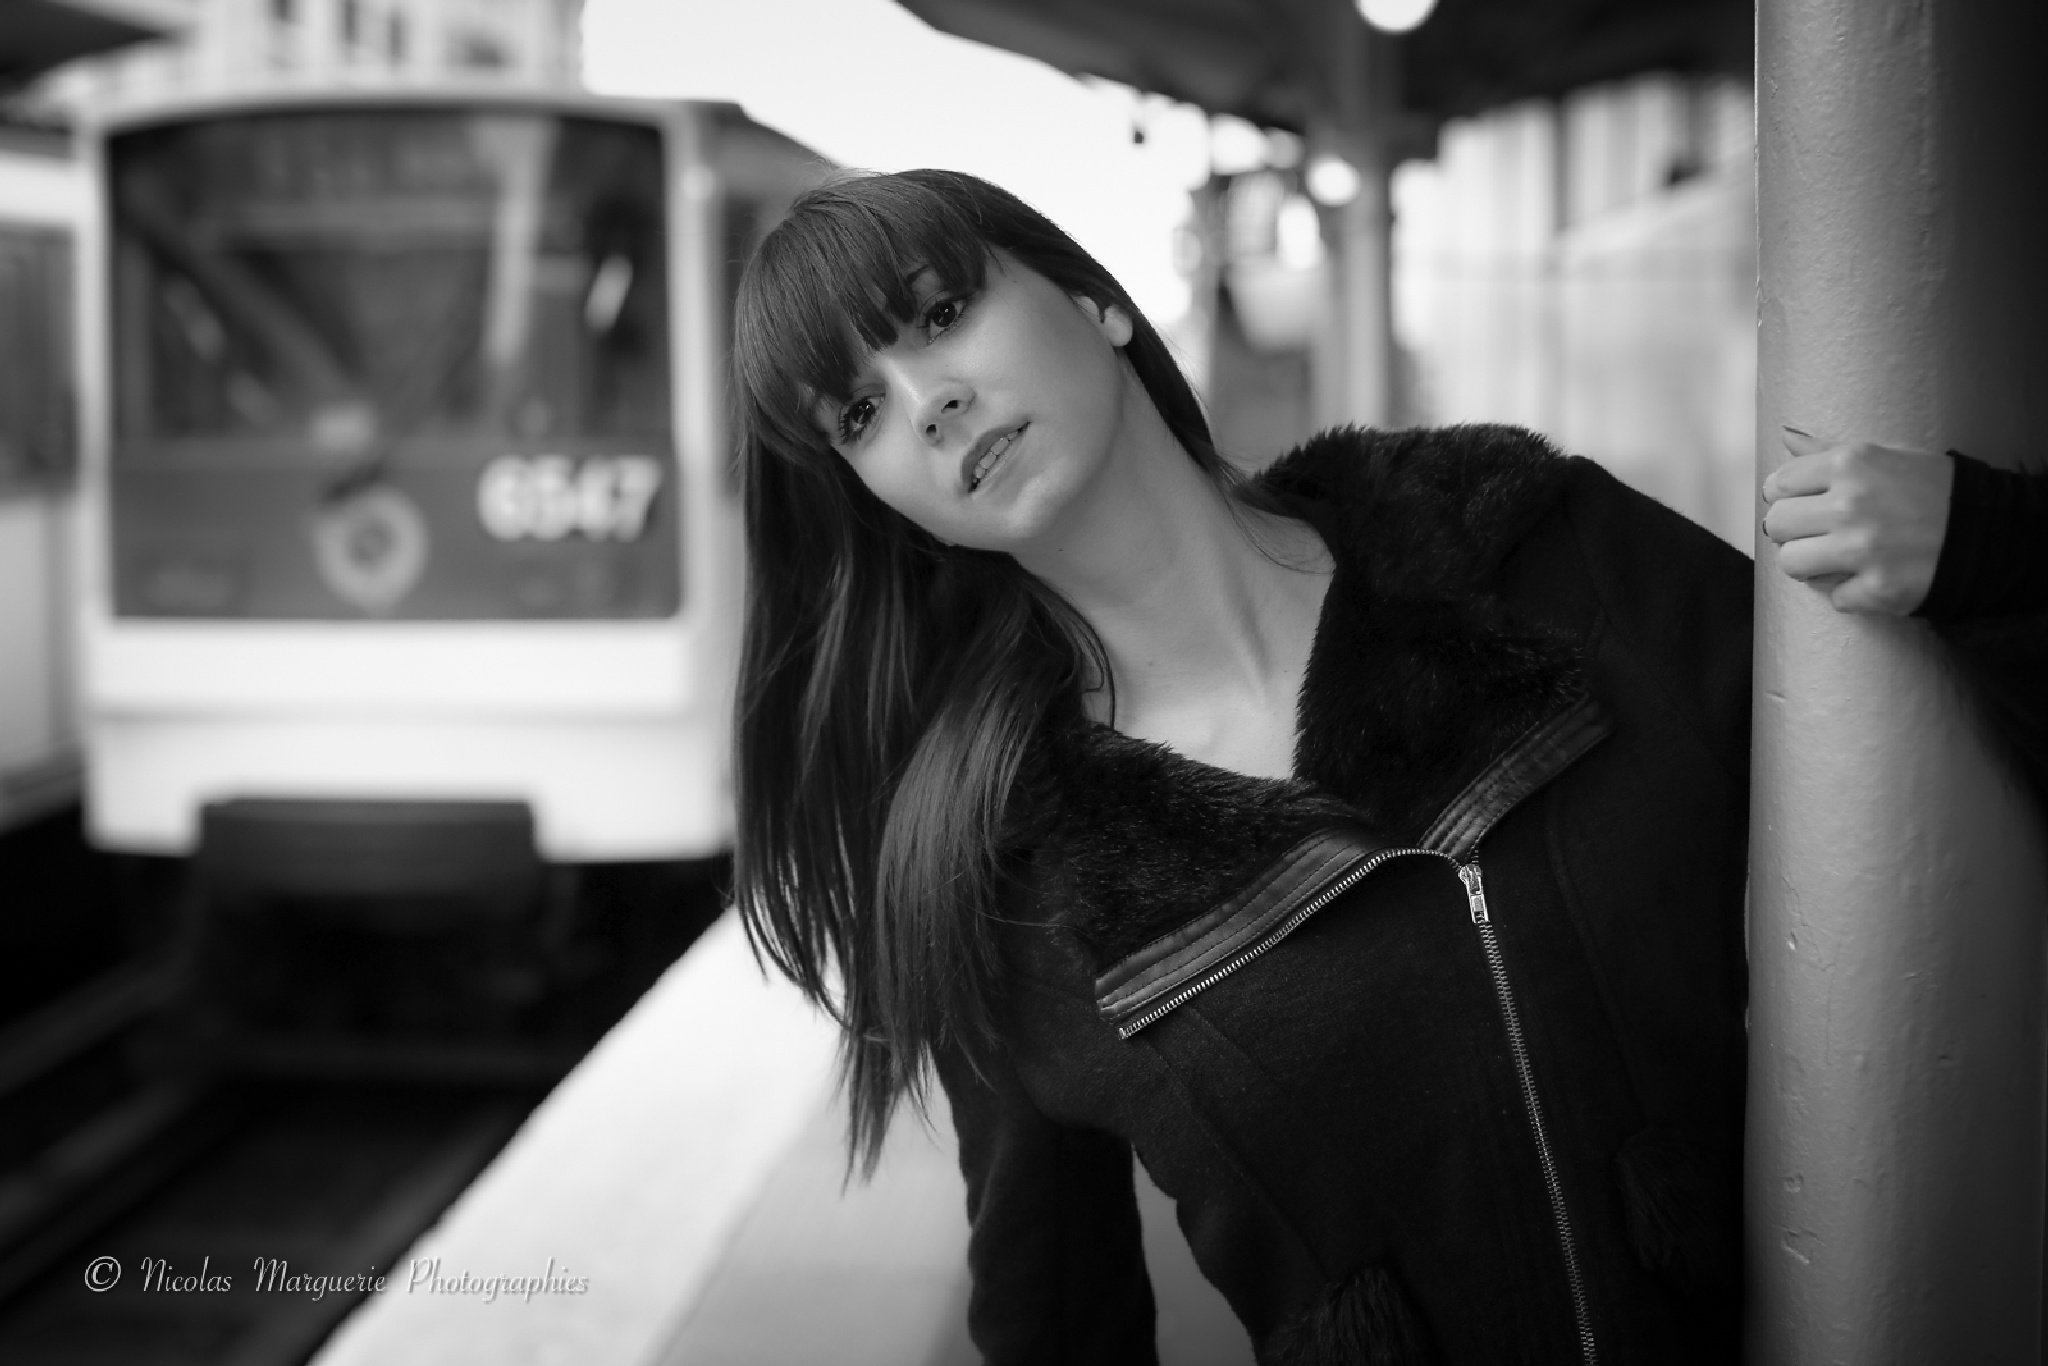 Pauline by Nicolas Marguerie Photographies